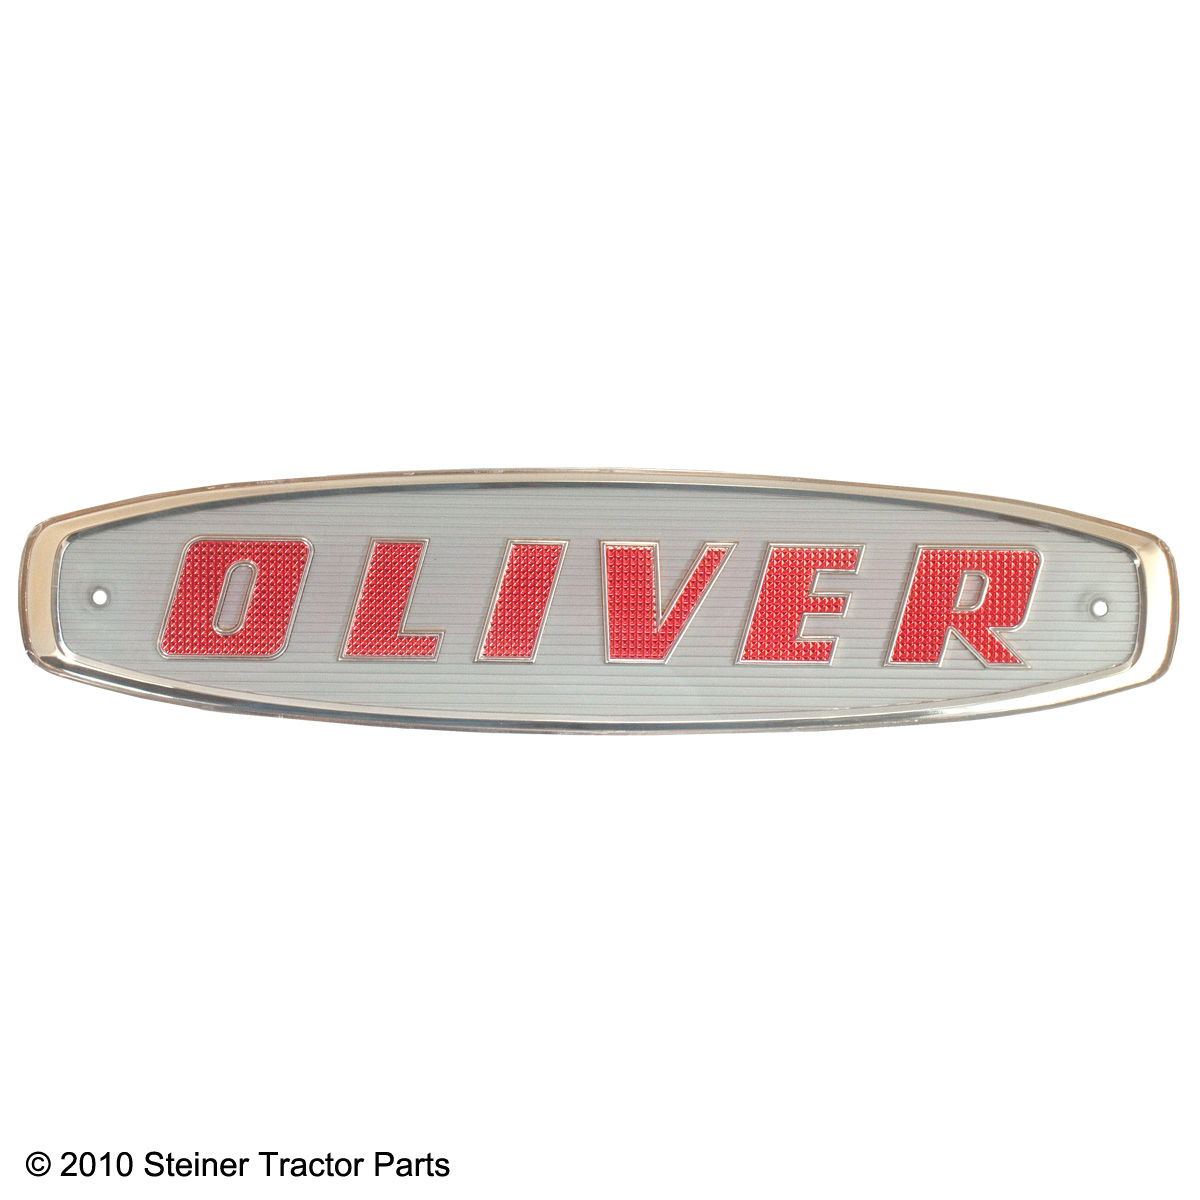 Brand new front emblem for the following models: Oliver 550, 770, 880, 950, 990 and 995 (up to 1962)  Red letters on a white background with gold trim.  Replaces: 101430A This emblem is plastic.